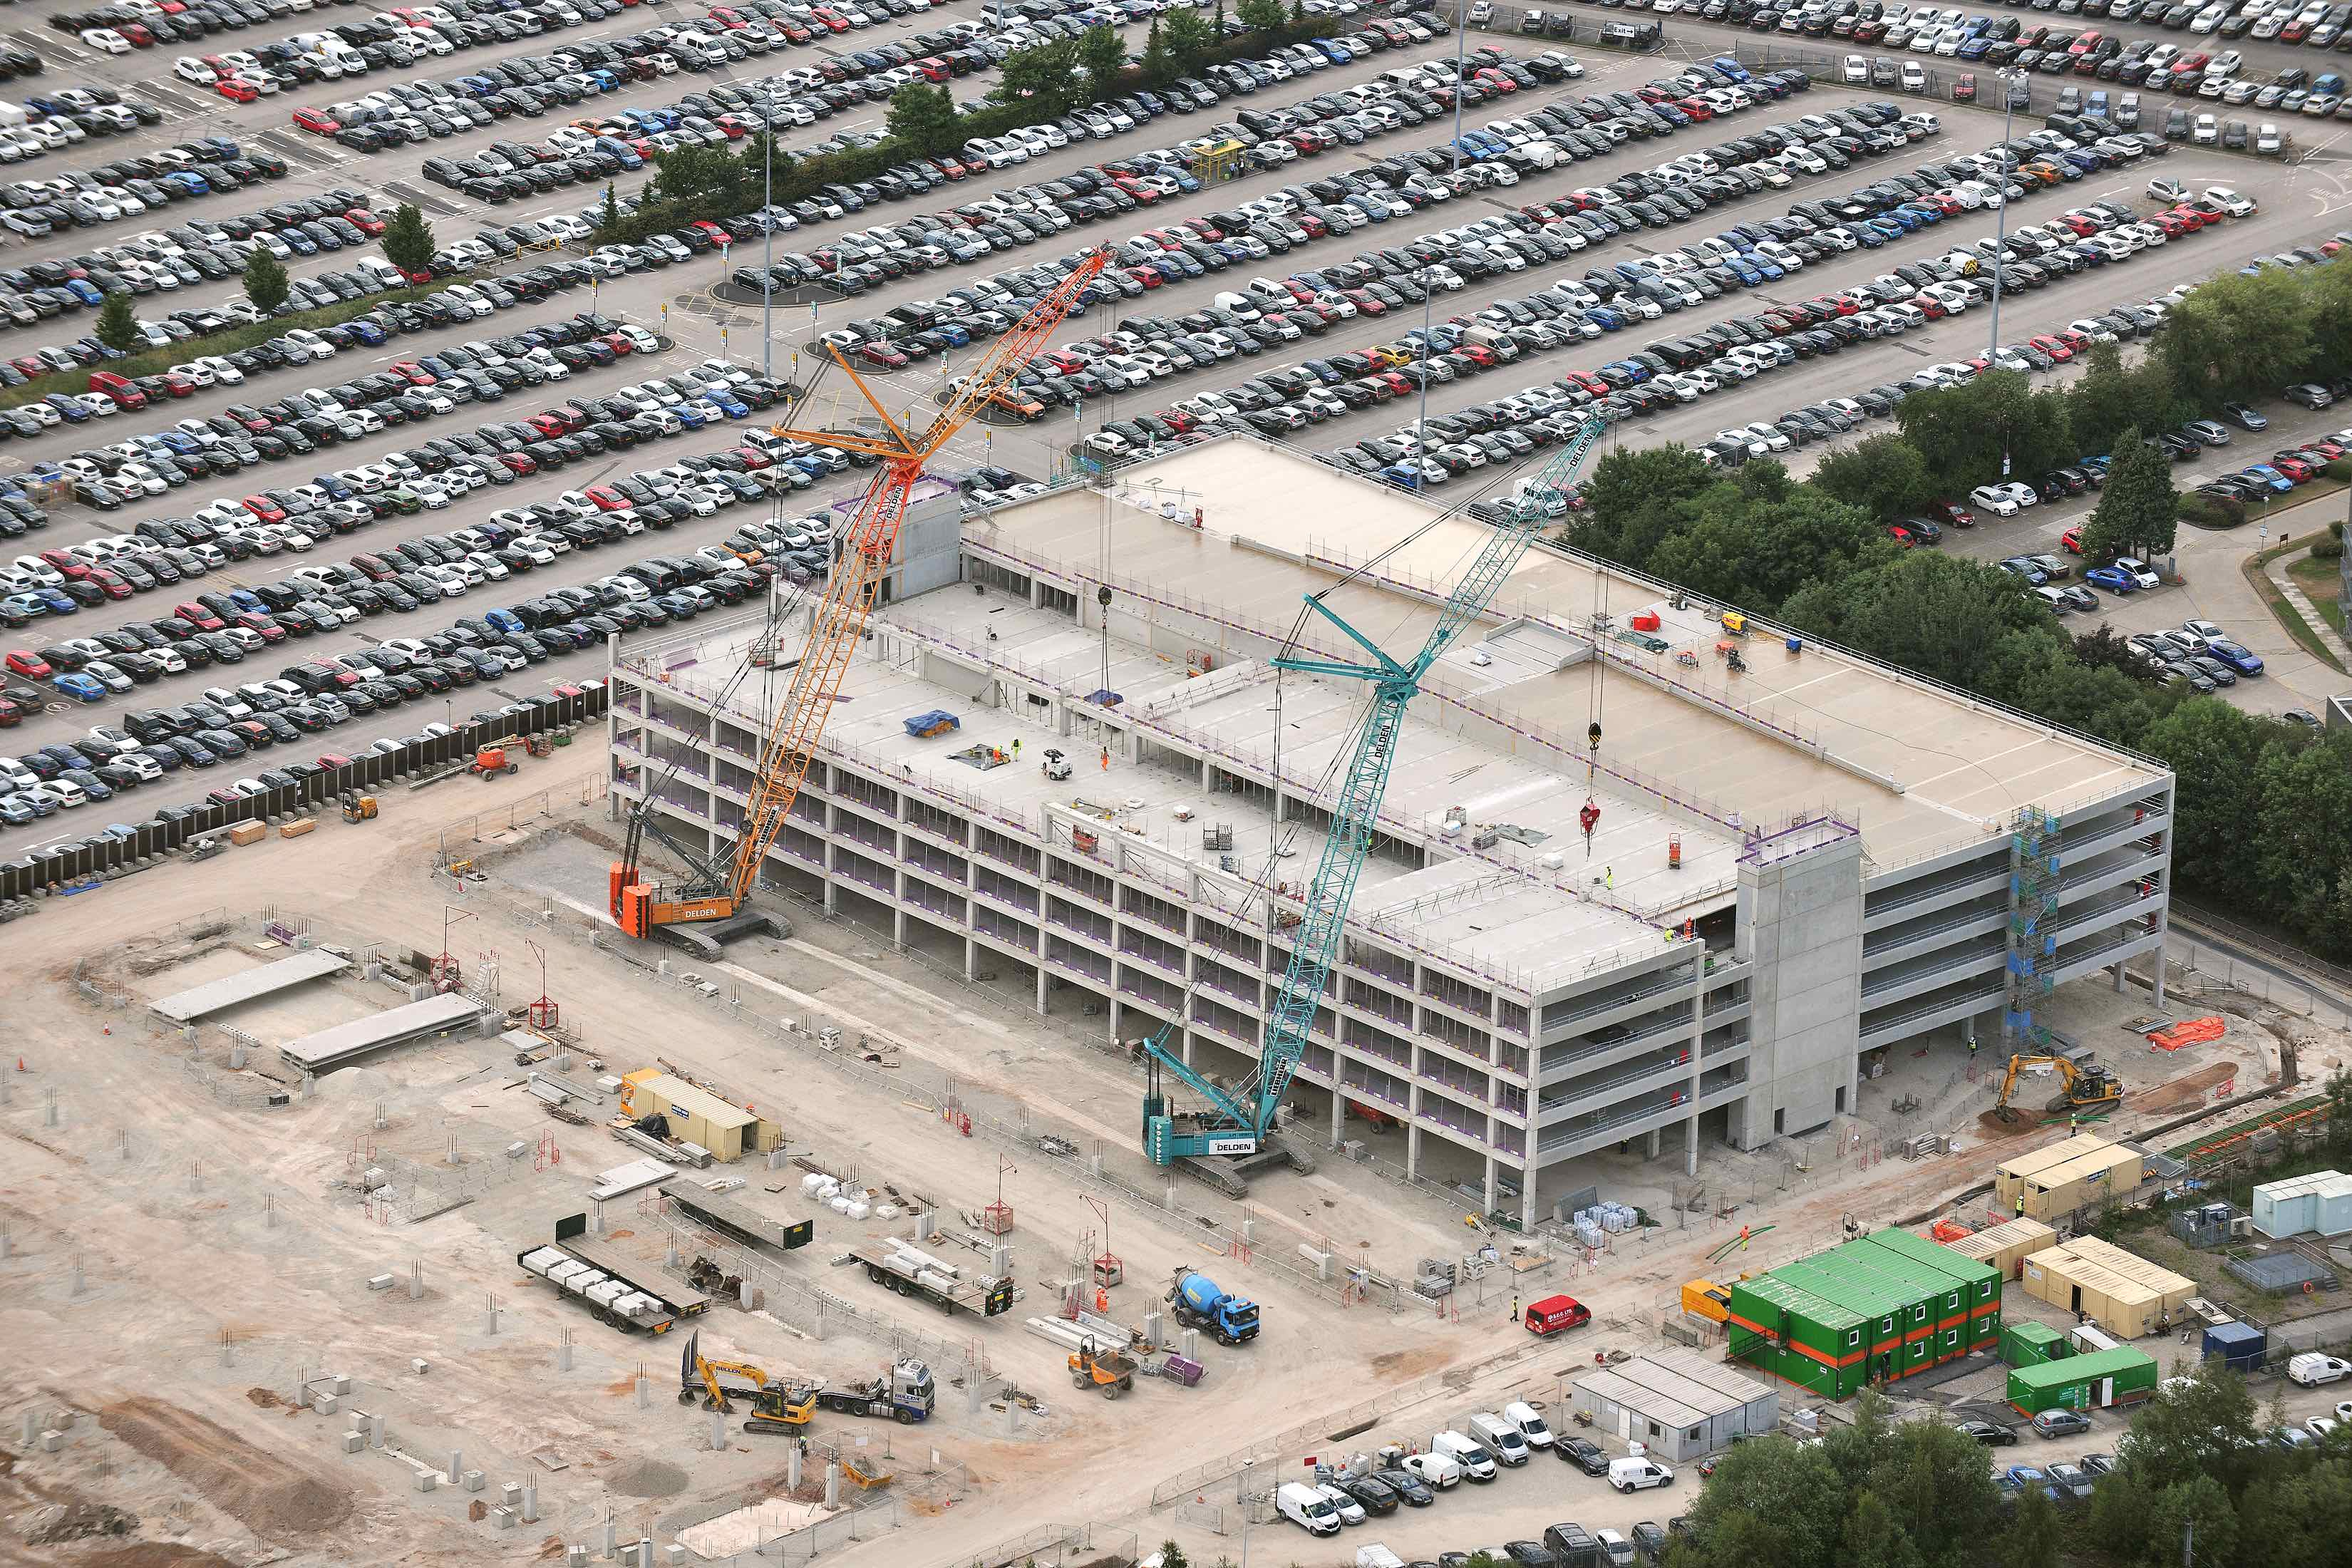 Bam bags second big airport multi storey car park job construction bam is already on site at manchester airport constructing a 6500 space meet and greet multi storey car park at terminal 1 and terminal 3 m4hsunfo